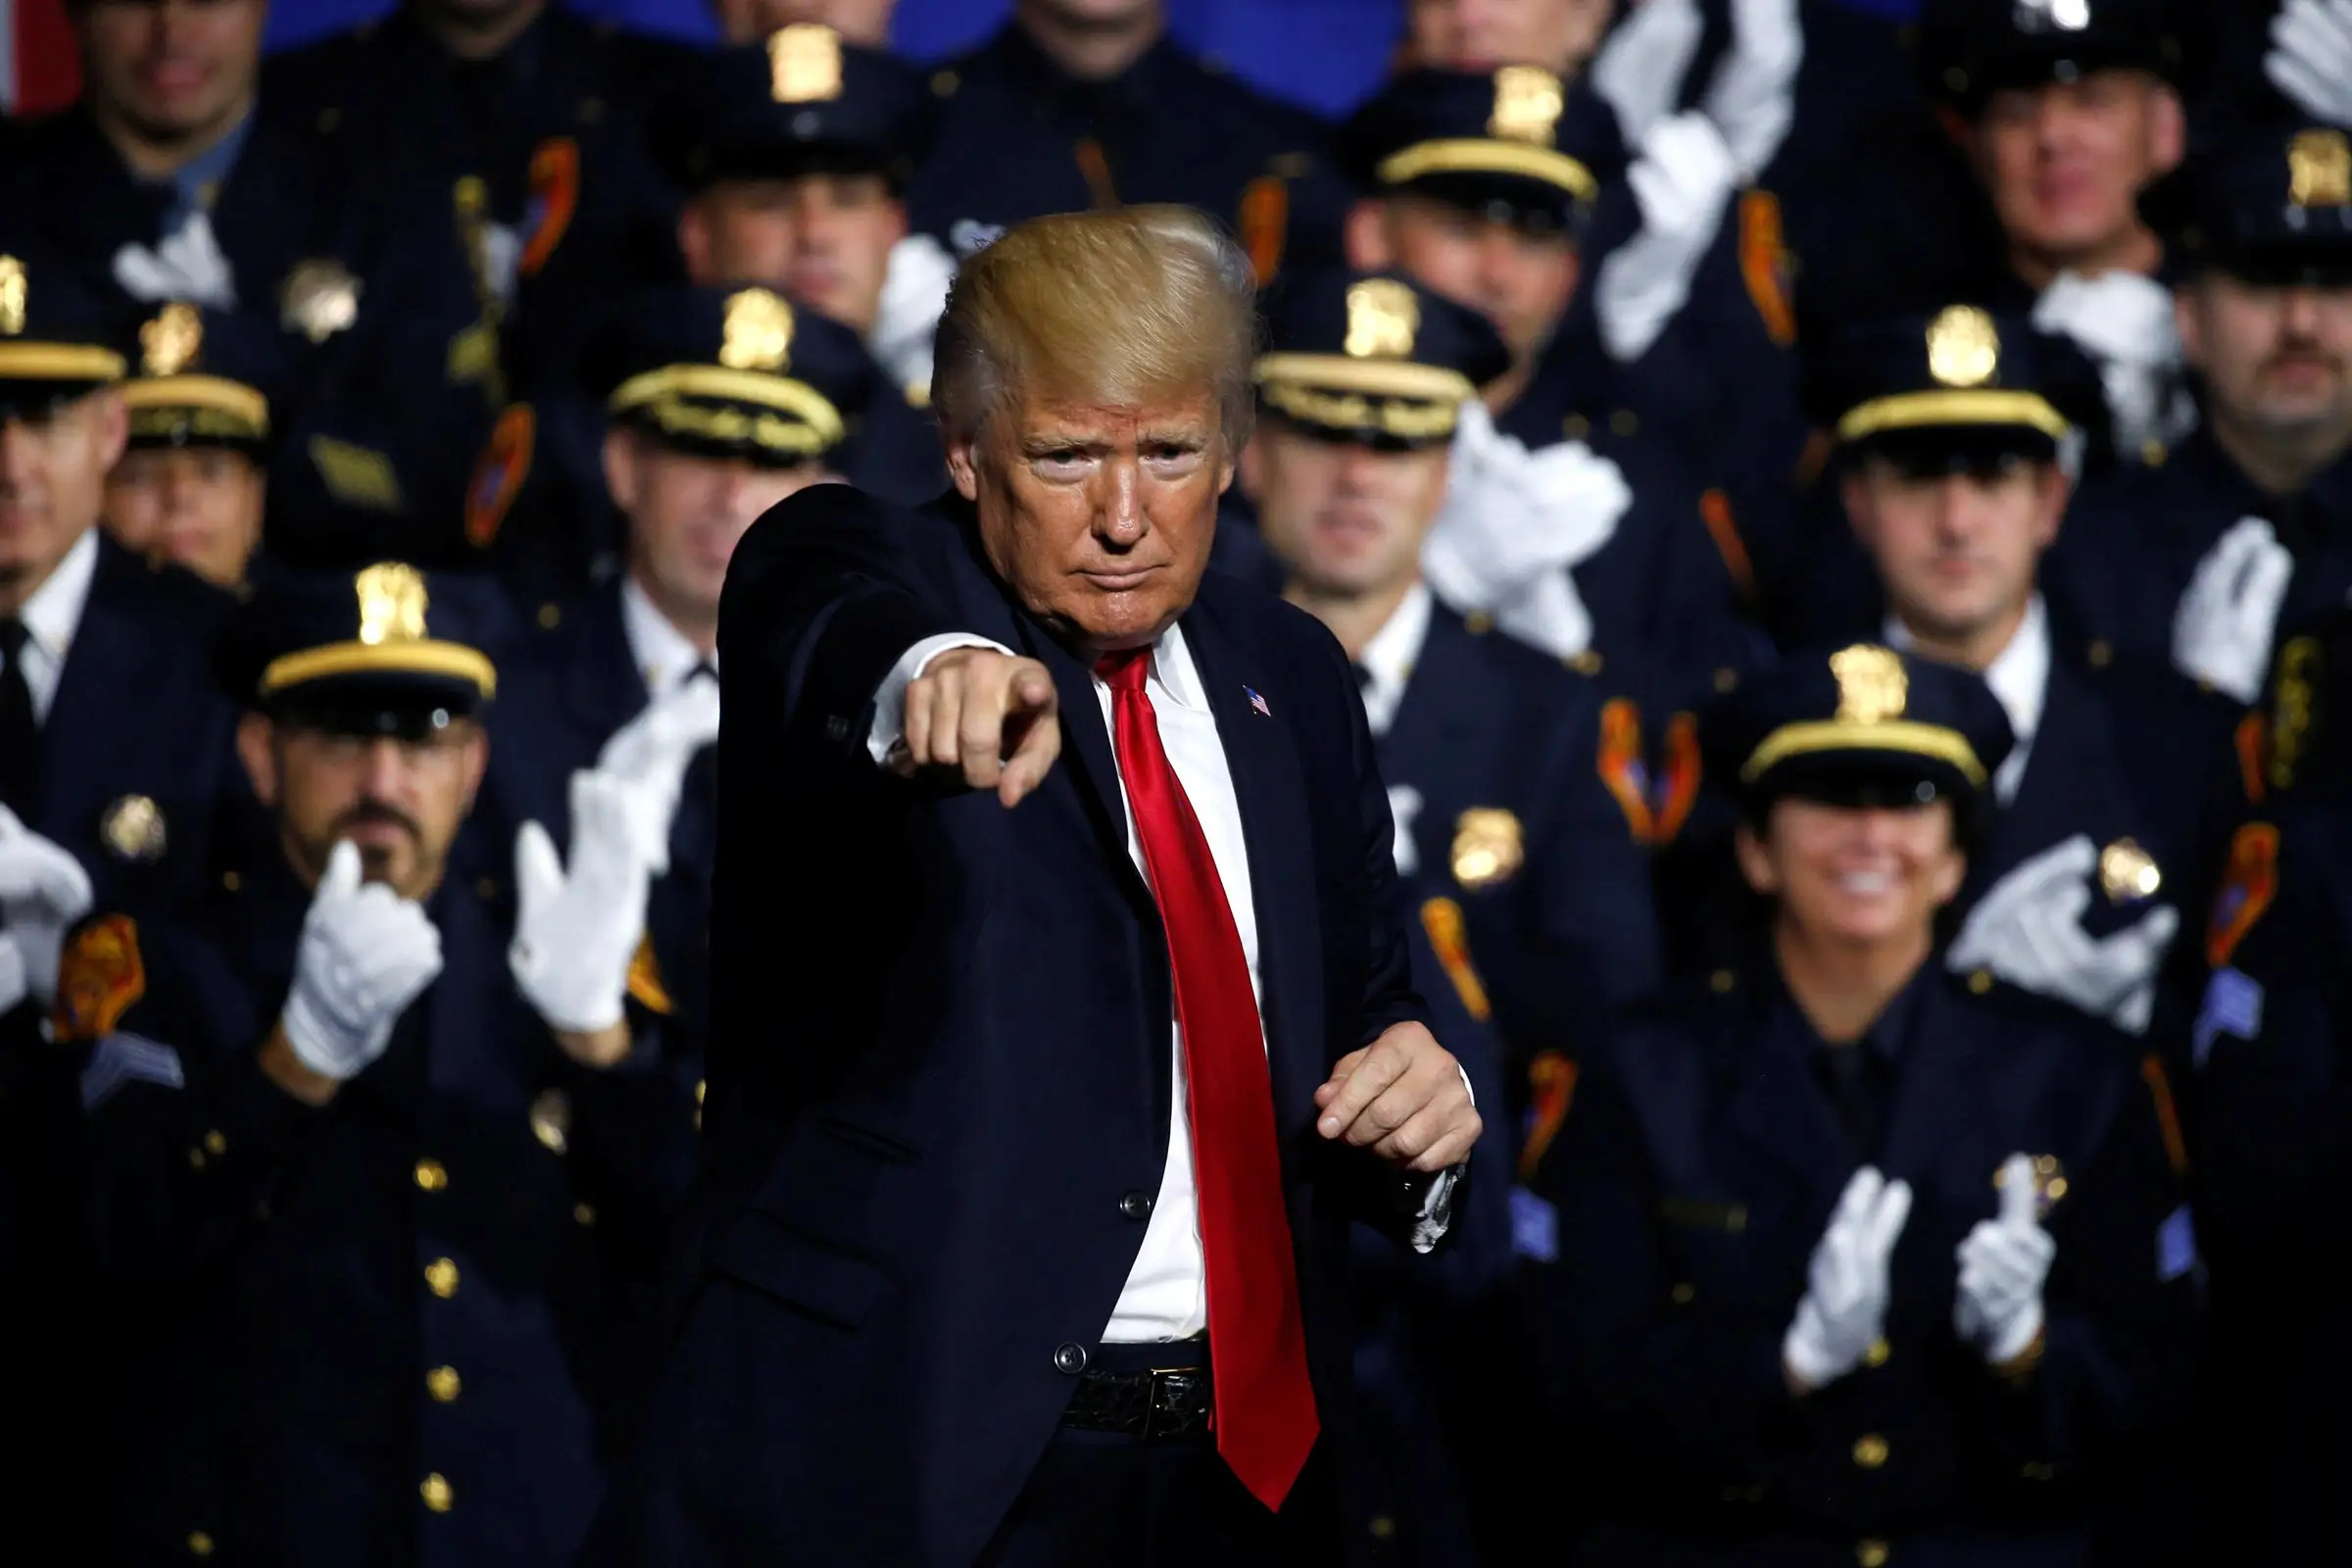 Donald Trump Long Island cops police speech